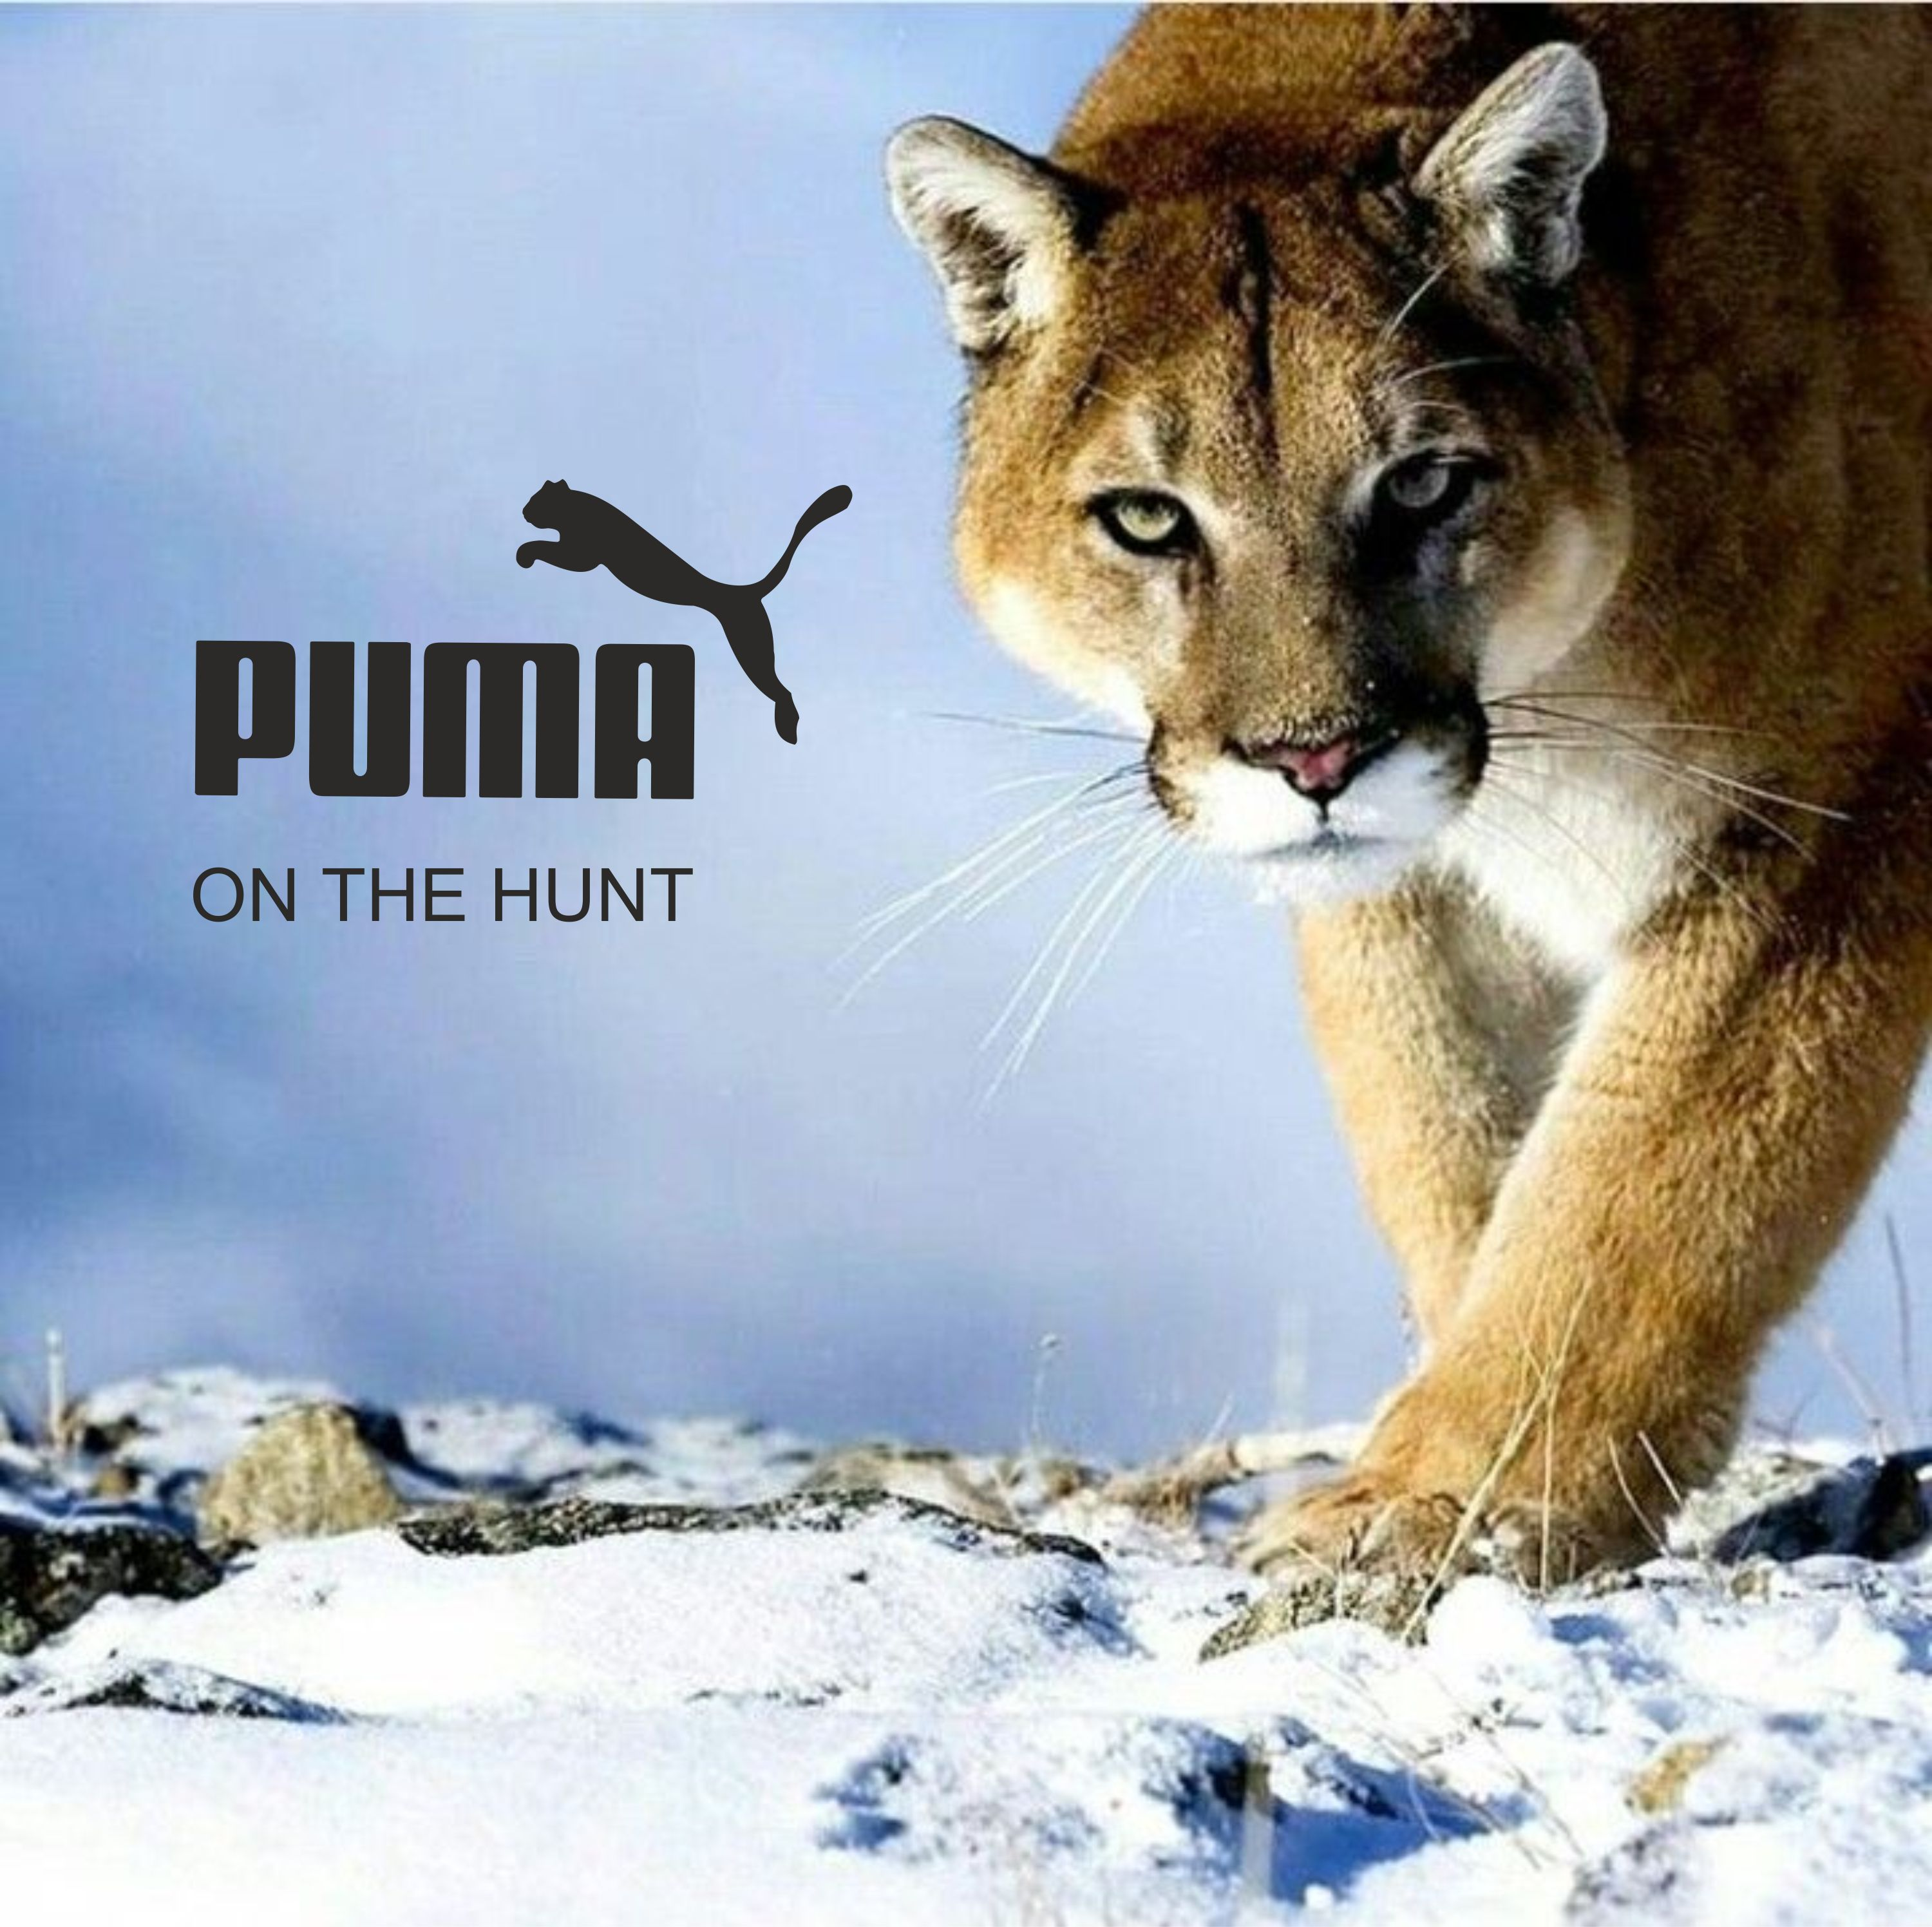 Puma on the hunt